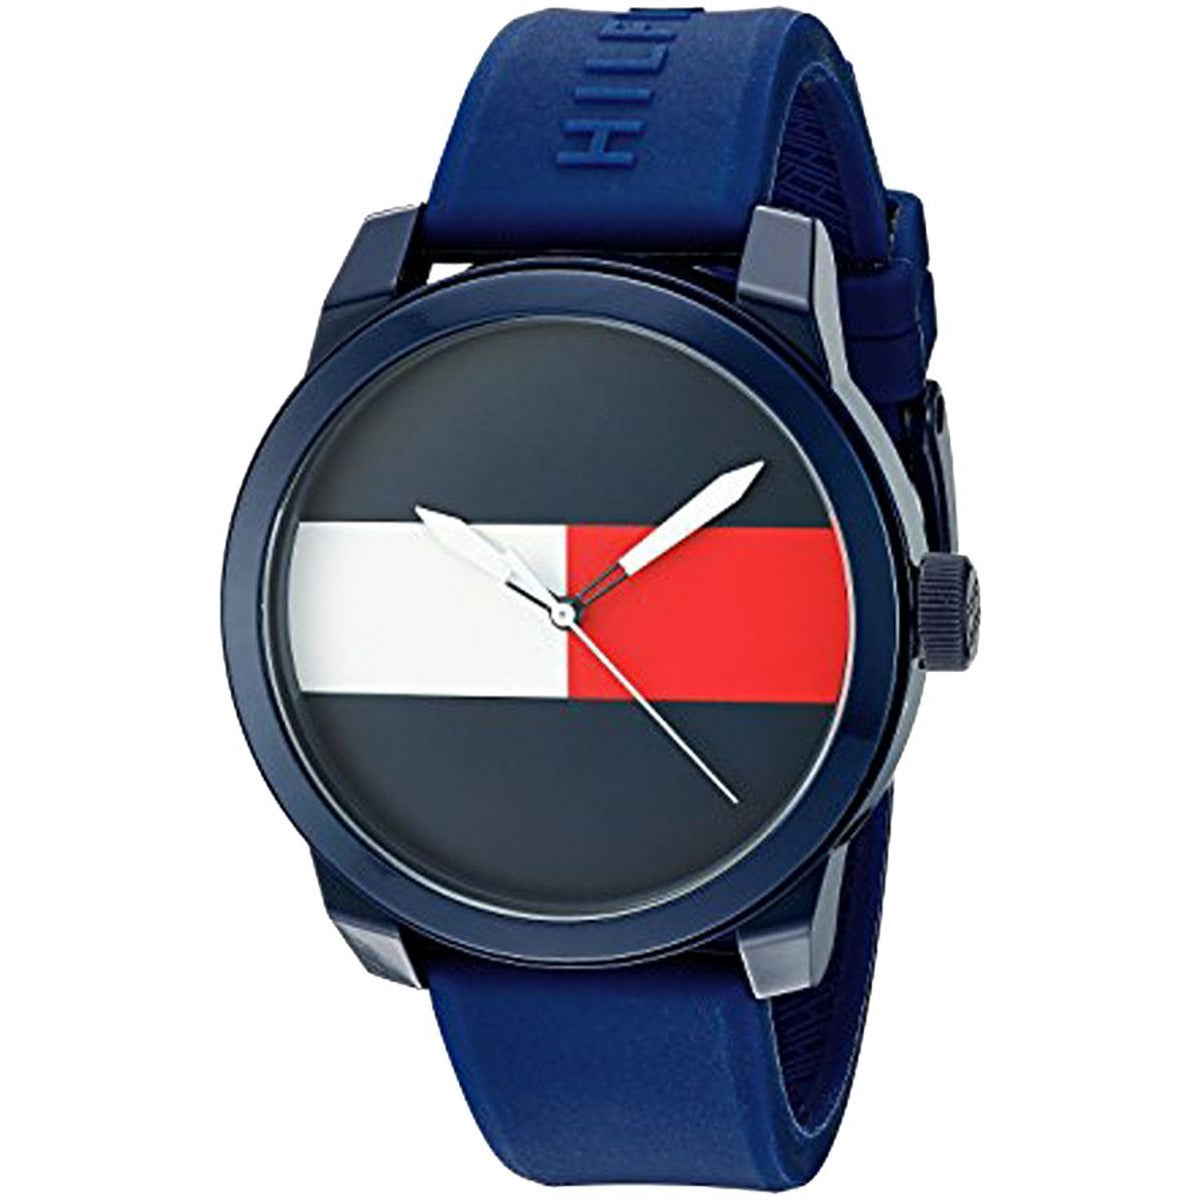 Tommy Hilfiger 1791322 Men's Blue Dial Rubber Band Watch